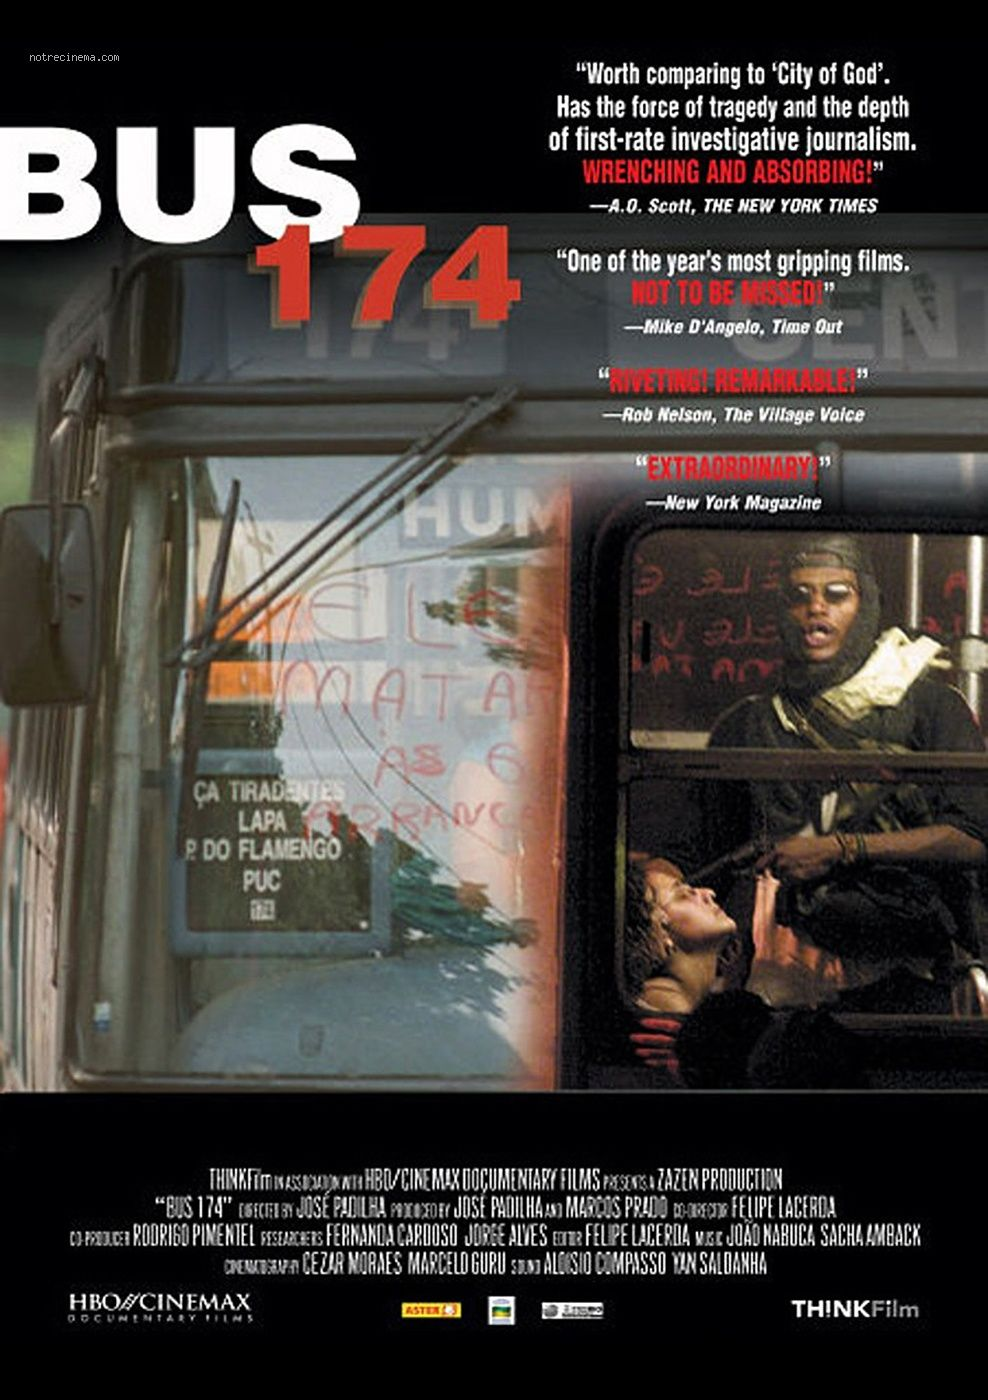 """Ônibus 174 [Bus 174] - José Padilha, Felipe Lacerda 2002 -- """"An award-winning examination of the tragic series of events that followed a desperate bus hijacking in Rio de Janeiro (2000) that turned deadly when a SWAT team took evasive action against the drug-addled hijacker. The tragic event was broadcast live on Brazilian tv."""" Image: notrecinema.com"""